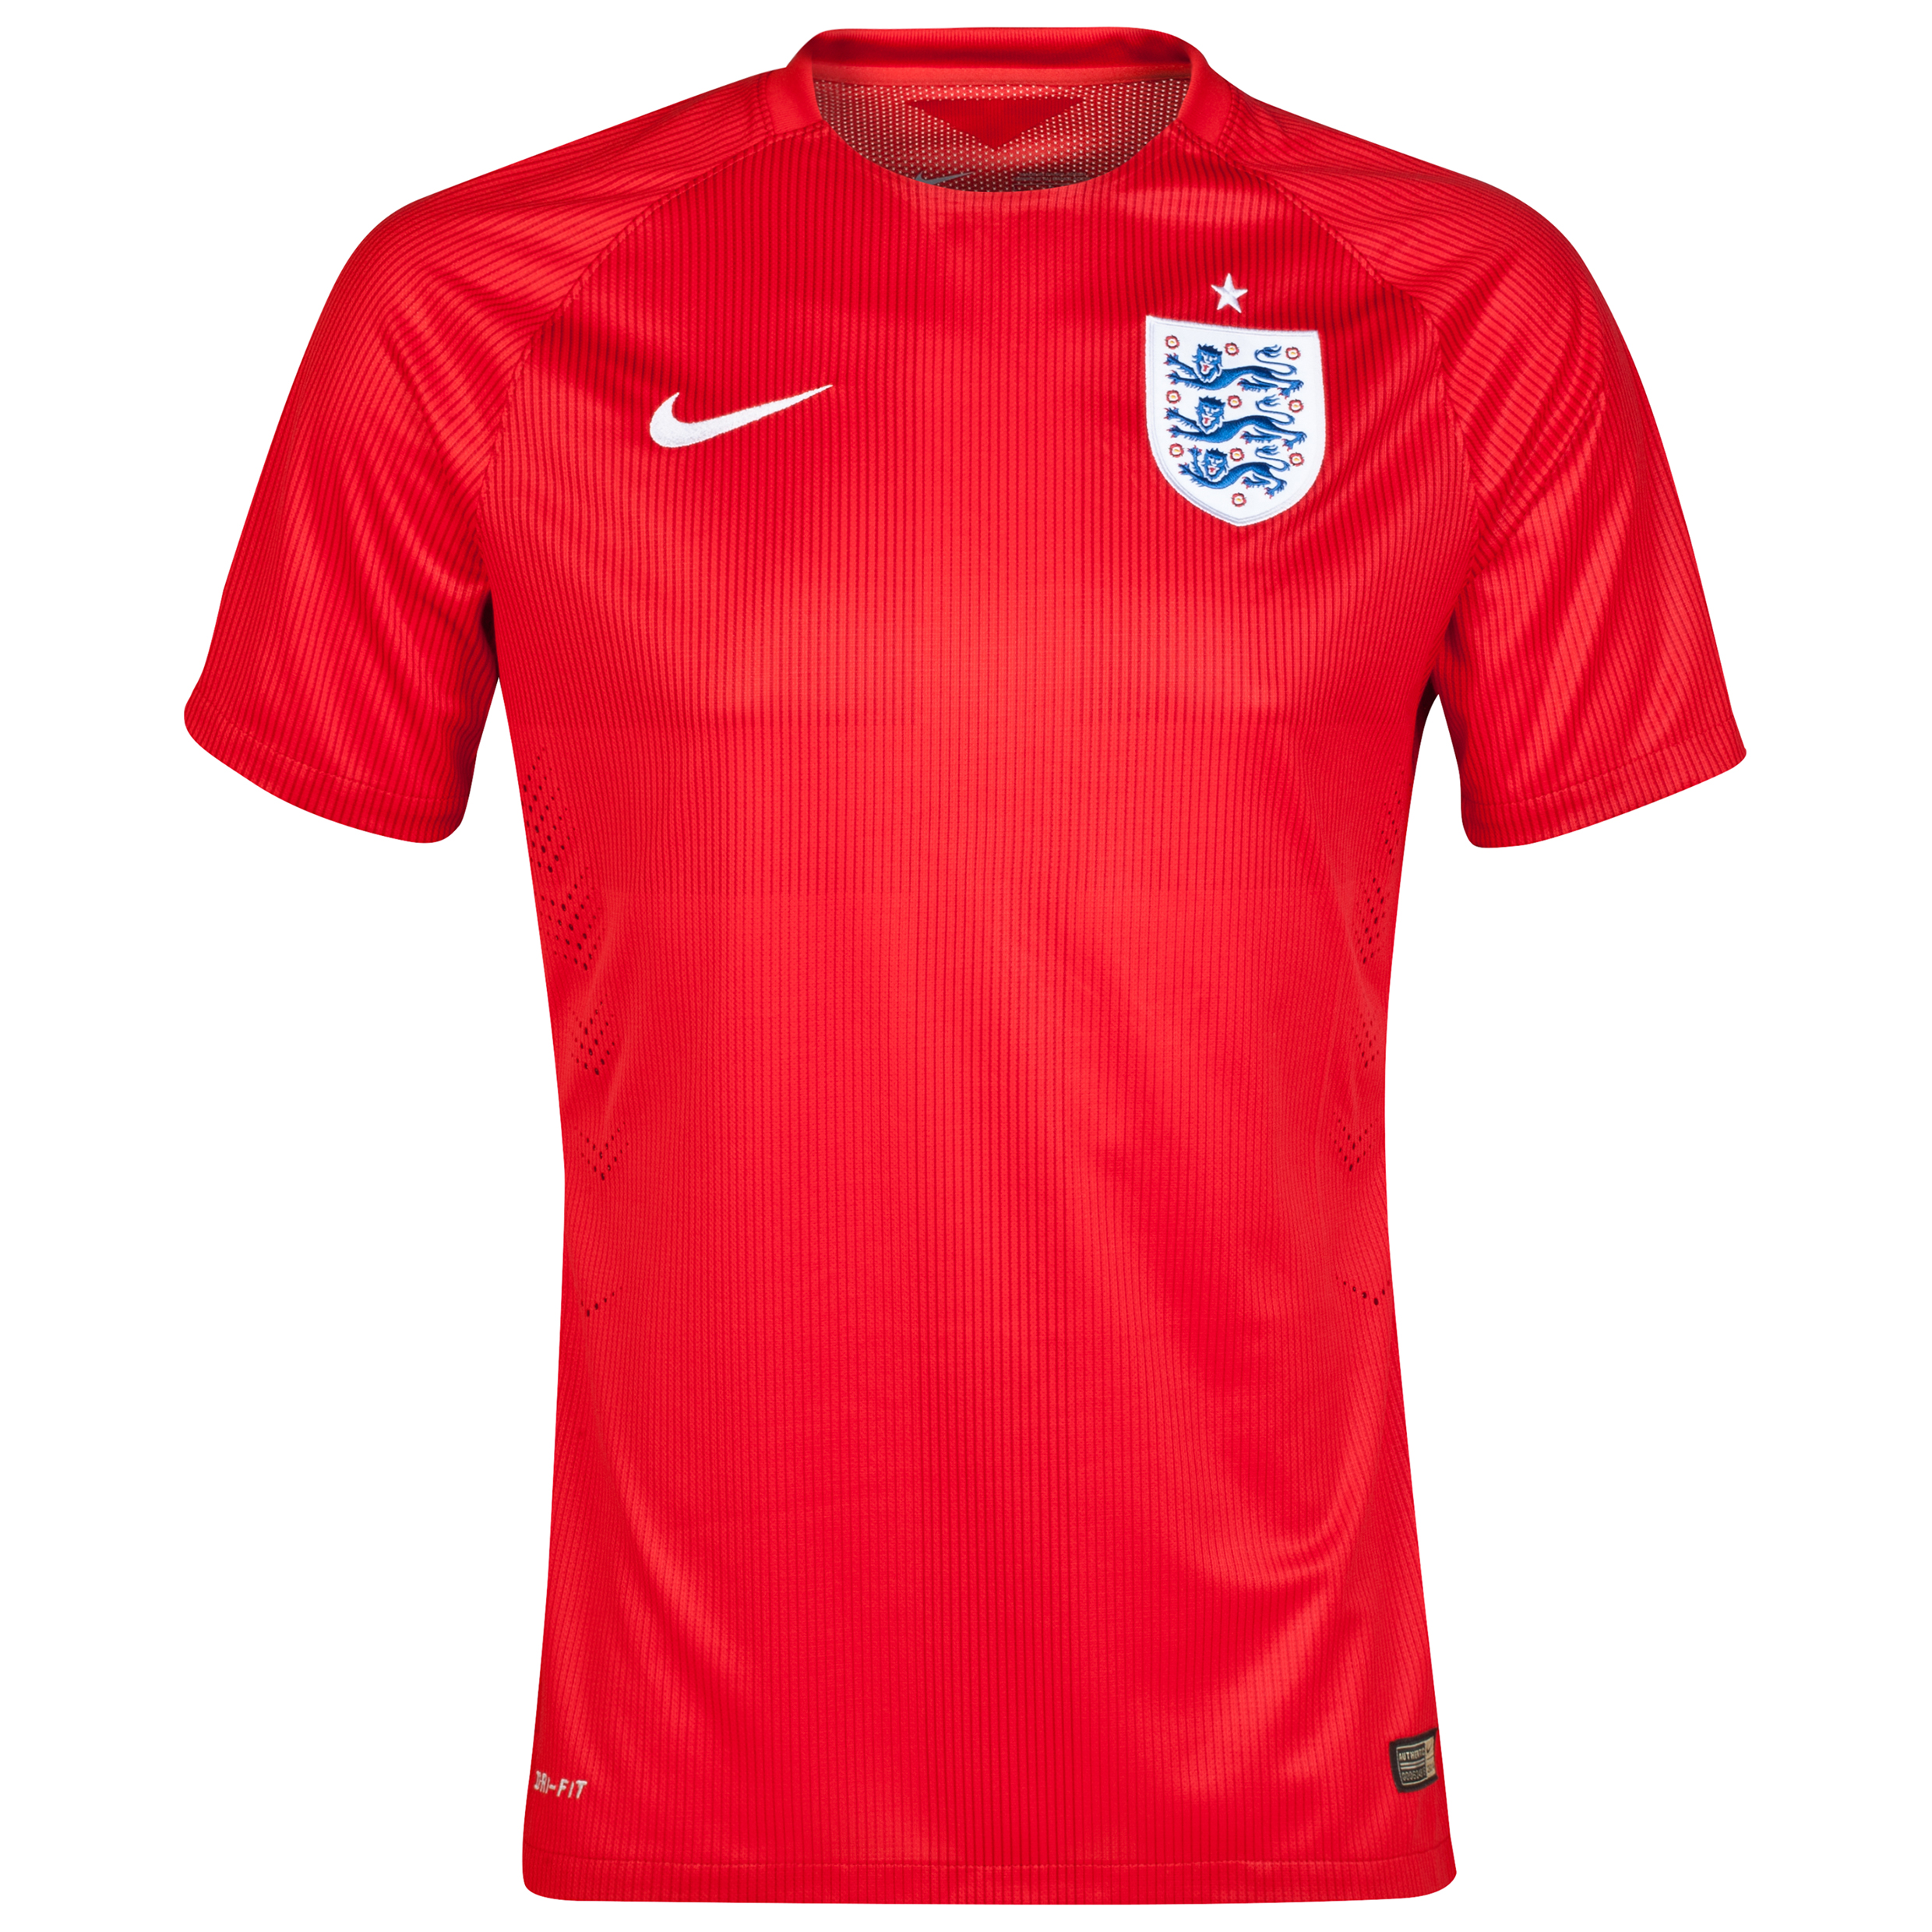 England Match Away Shirt 2014 Red